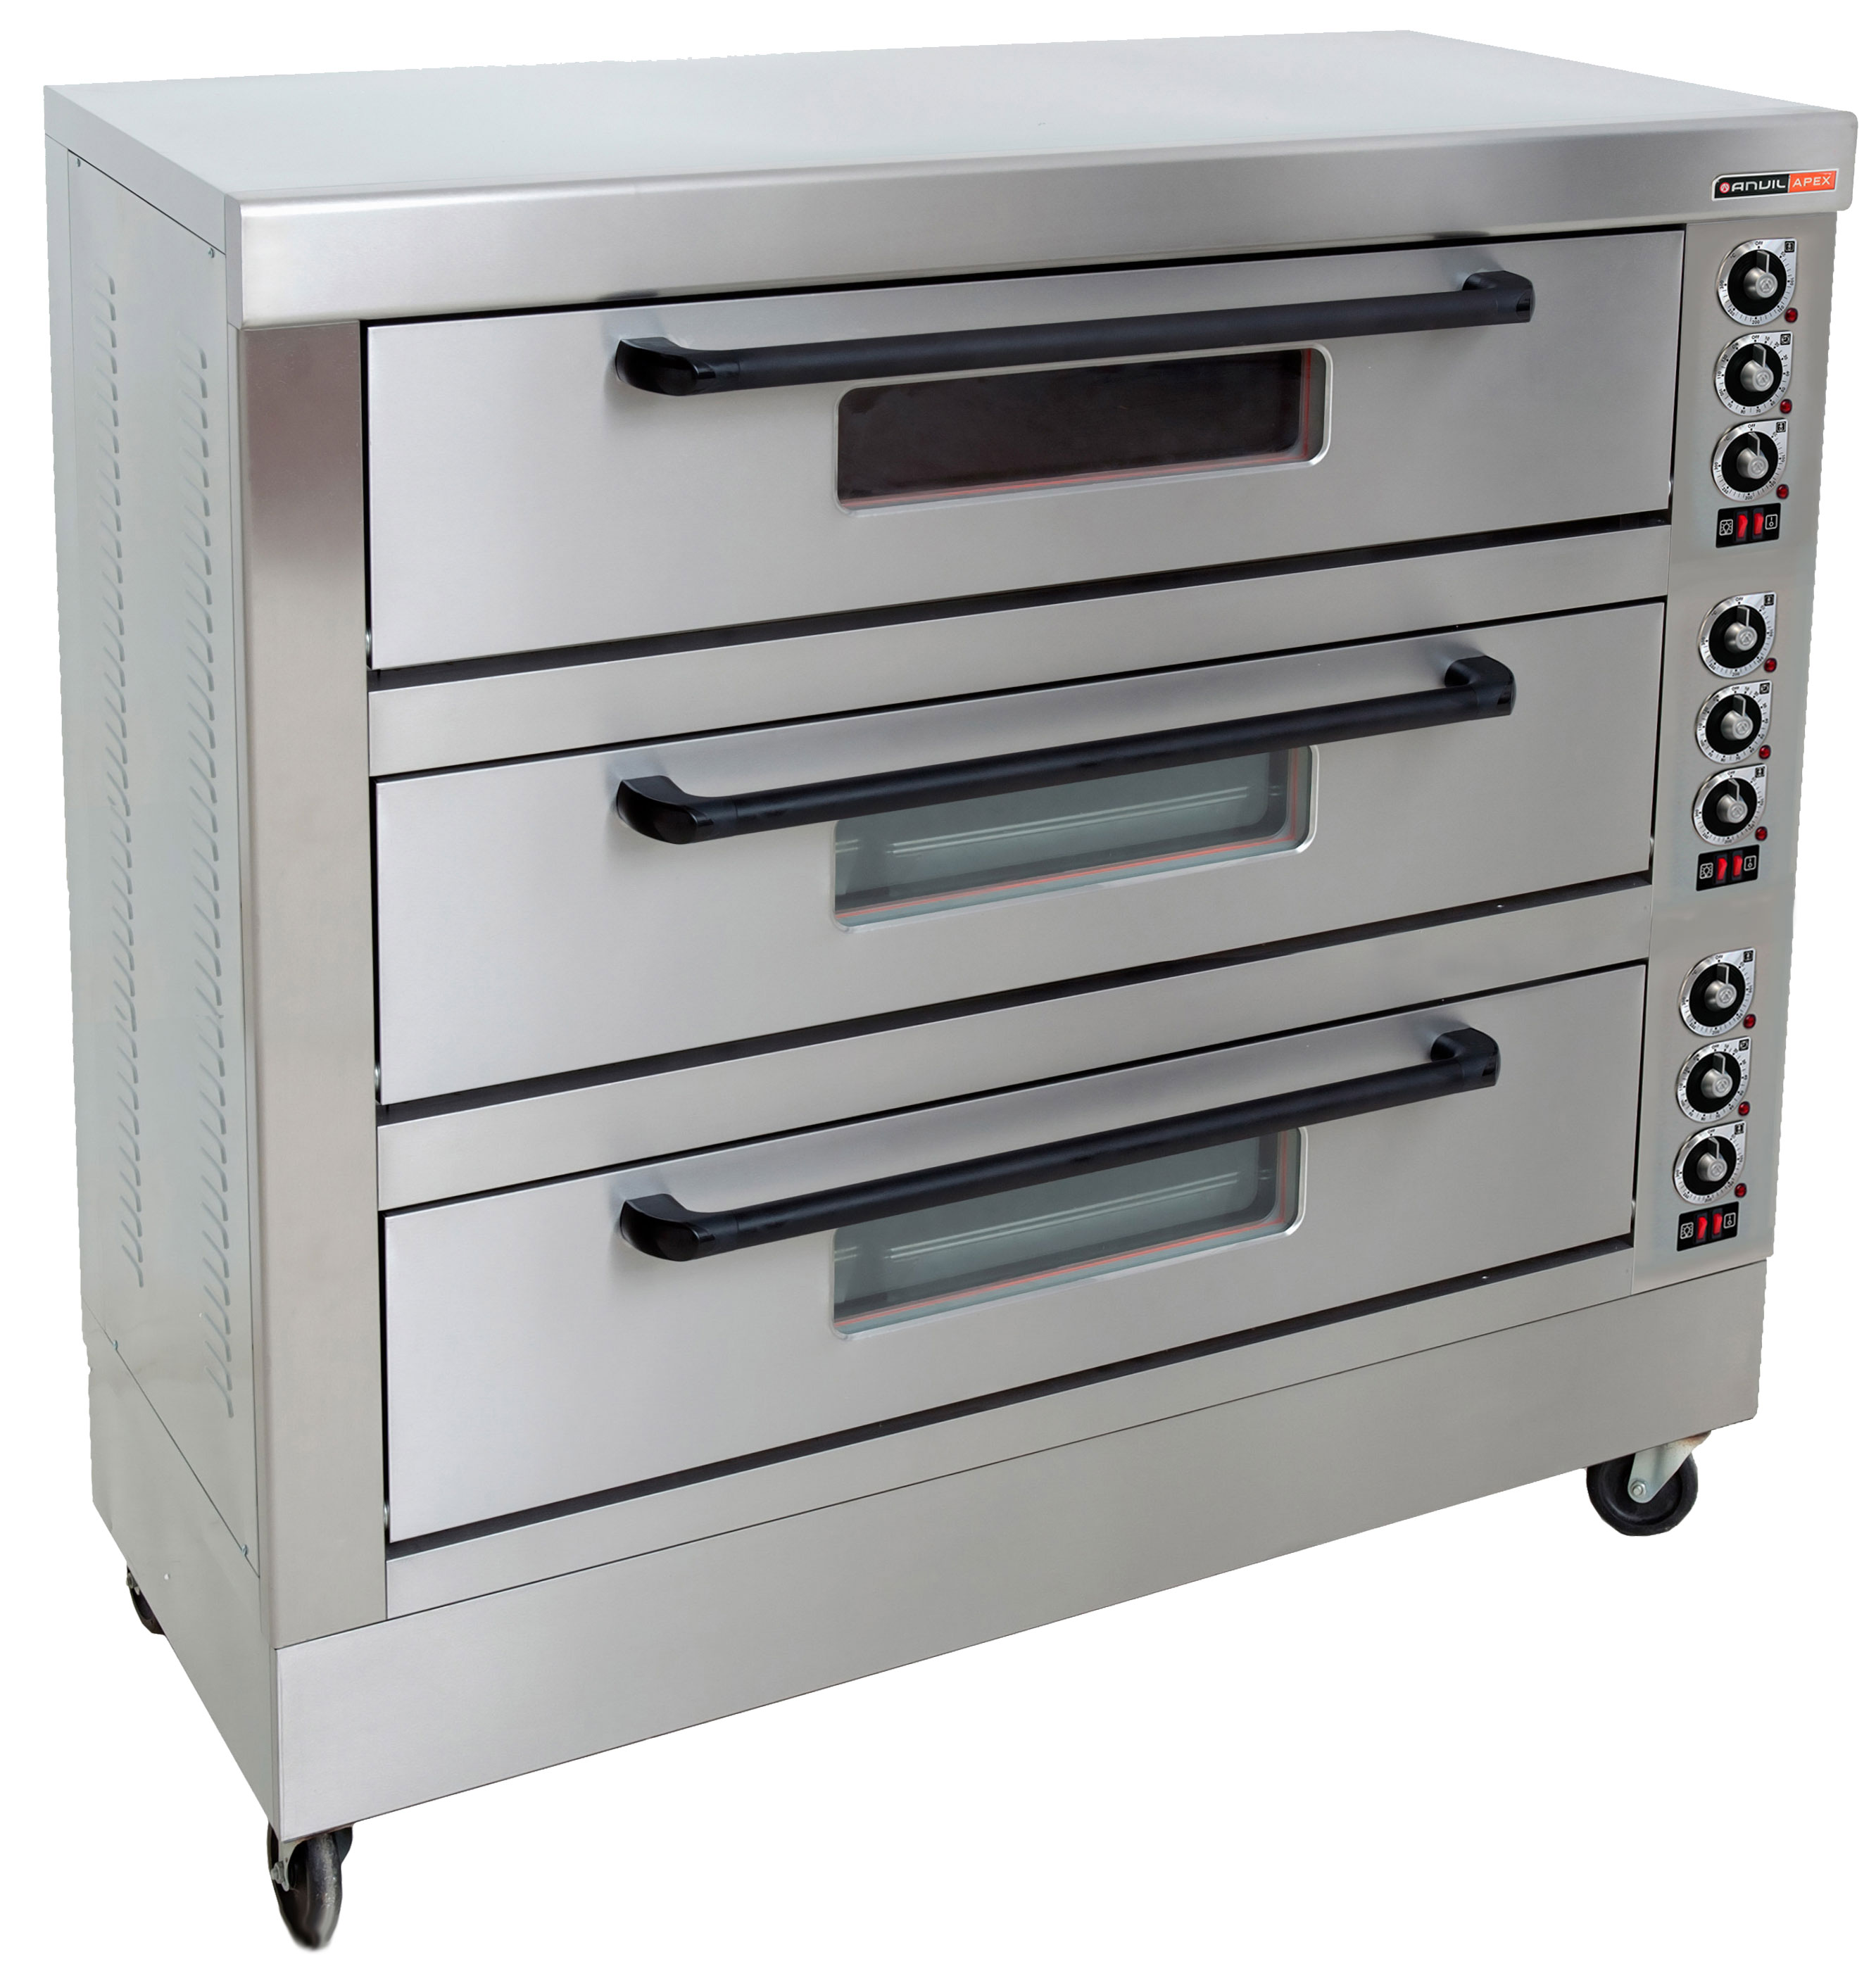 DECK OVEN ANVIL - 9 TRAY - TRIPLE DECK